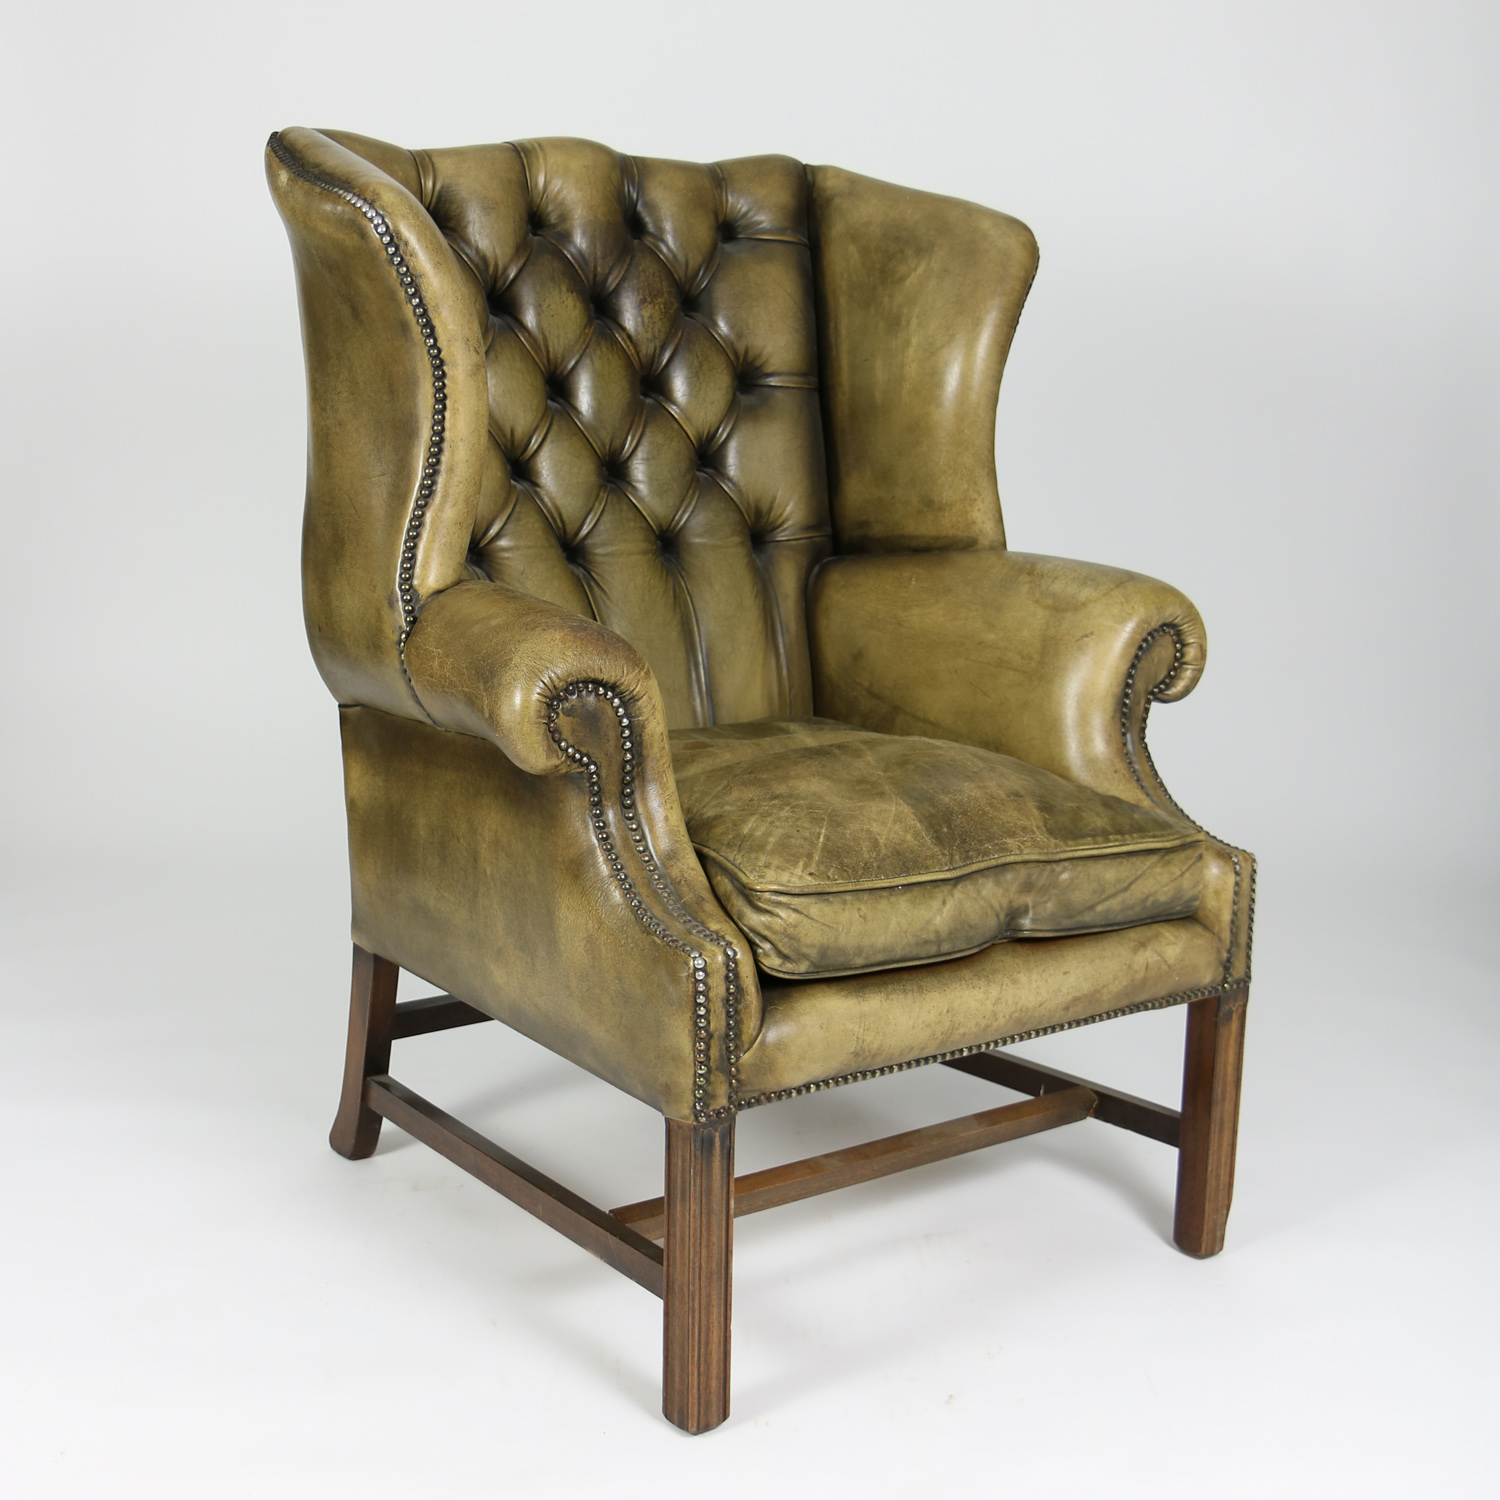 tufted nailhead chair rocking metal frame green leather wingback chair. ph. (415) 355-1690